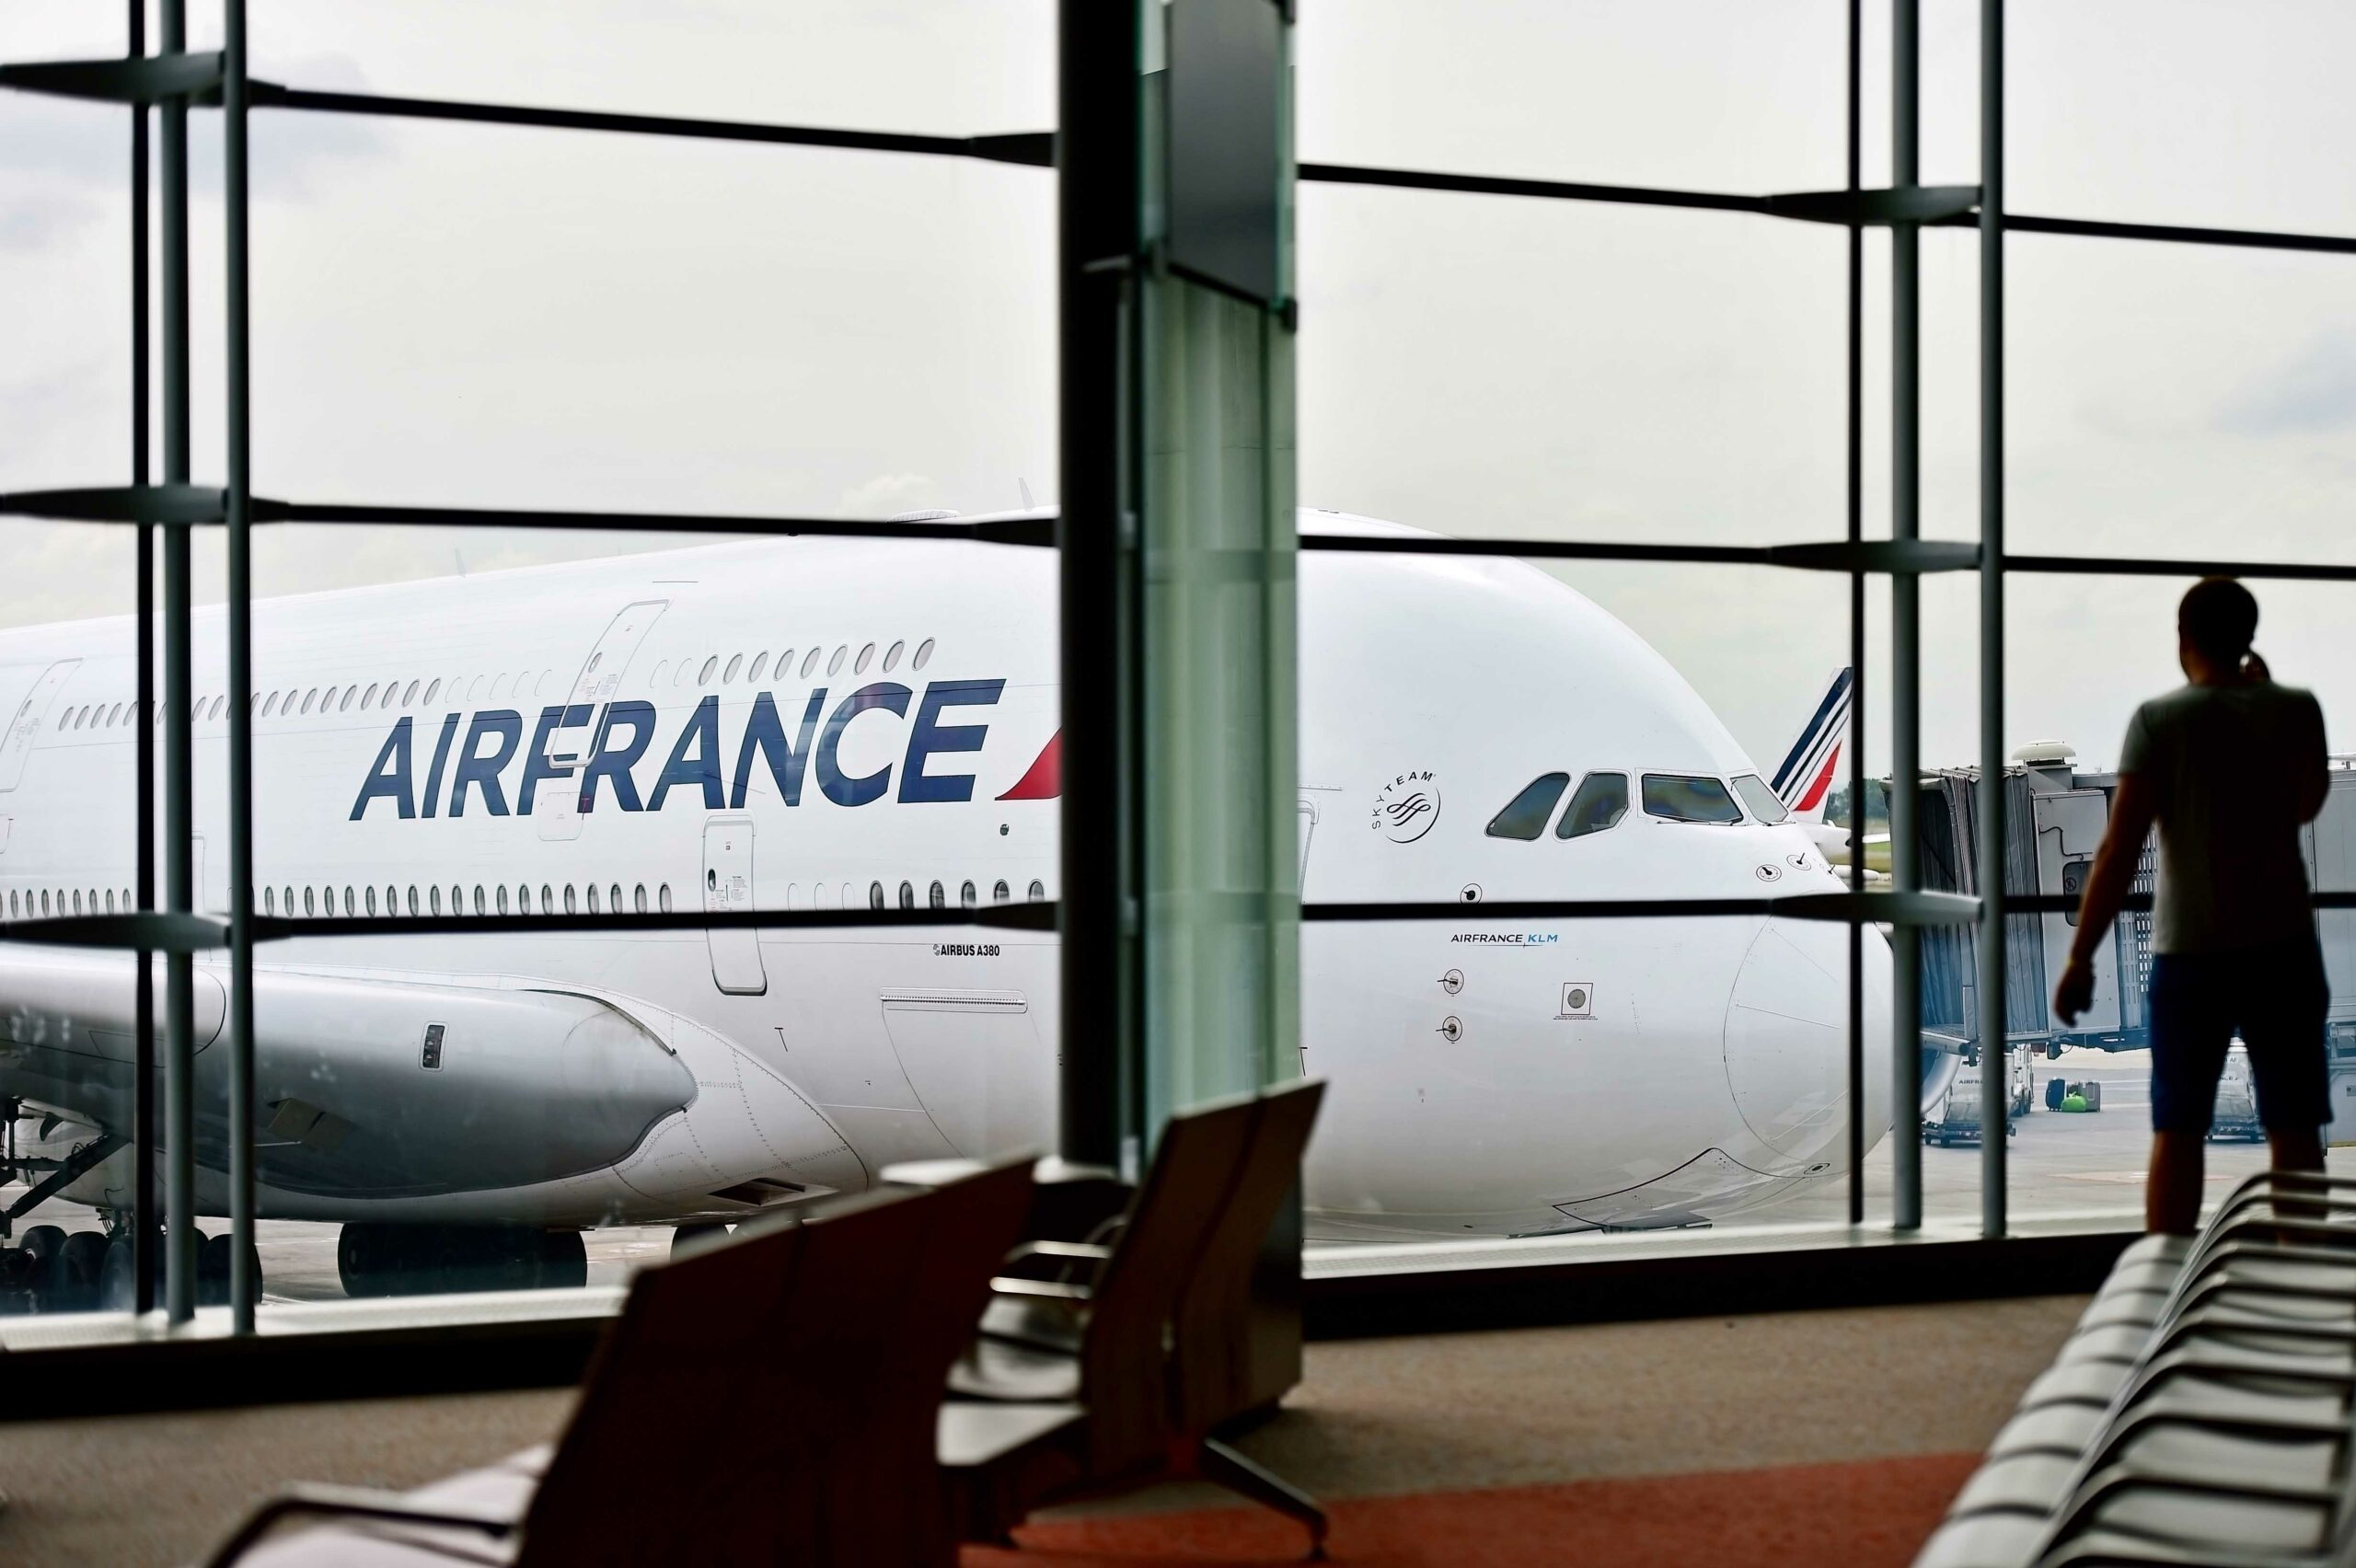 French government adding another 5 billion euro to assist Air France 1